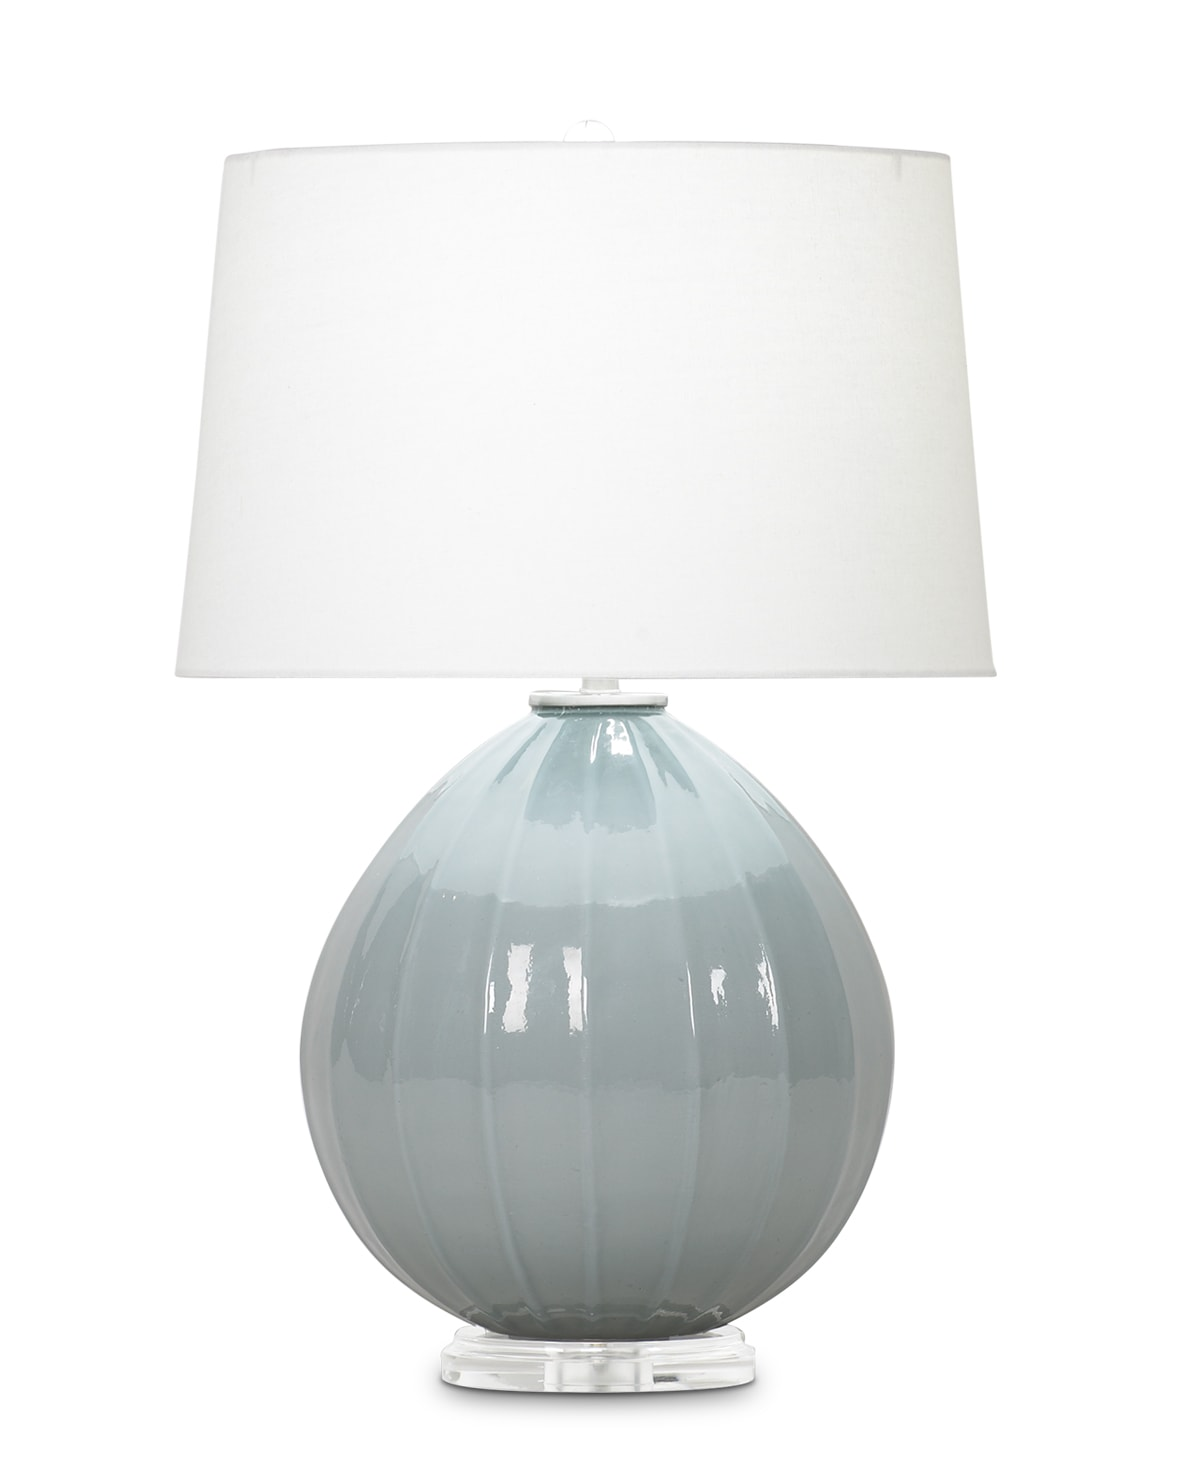 FlowDecor Margaux Table Lamp in mouth-blown glass with grey-blue finish and acrylic base and off-white linen tapered drum shade (# 3673)